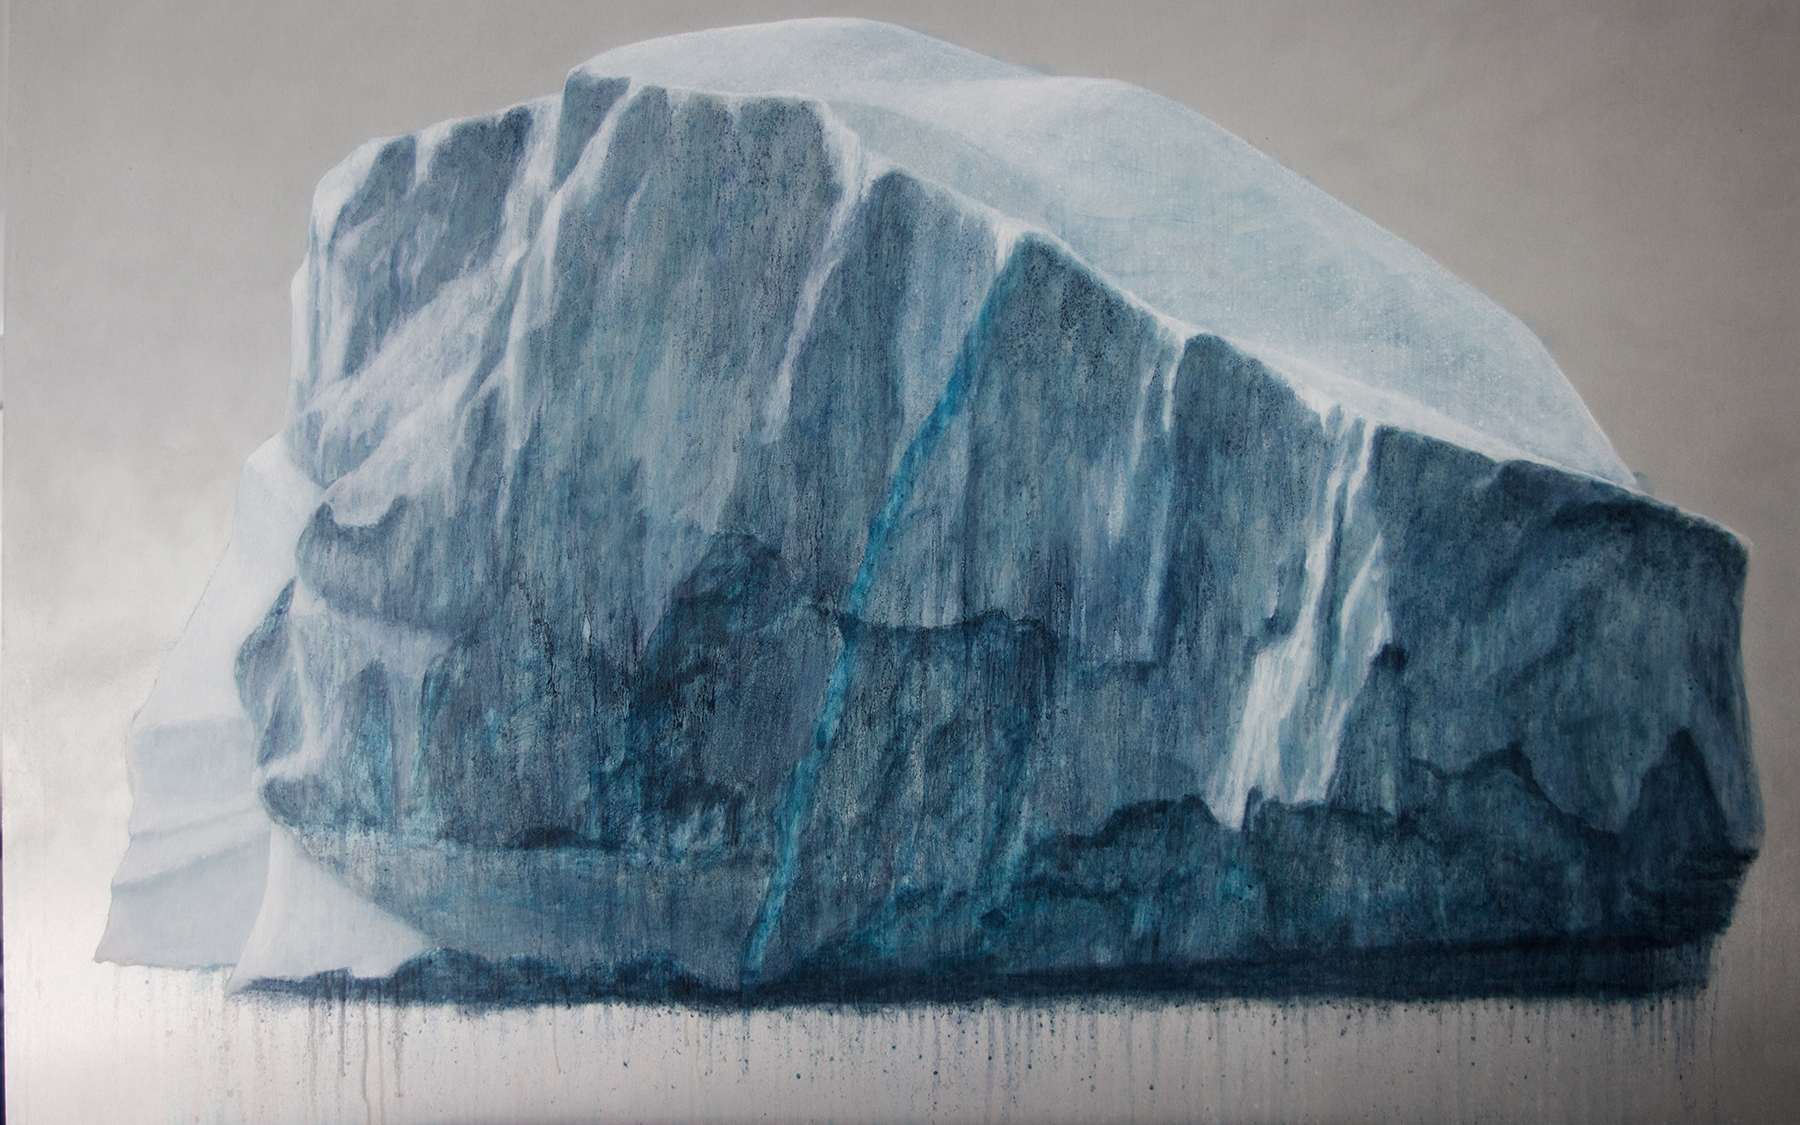 """Melting Iceberg"", Lisa Lebofsky, 2015, Oil on Aluminum, 25 x 40 inches."